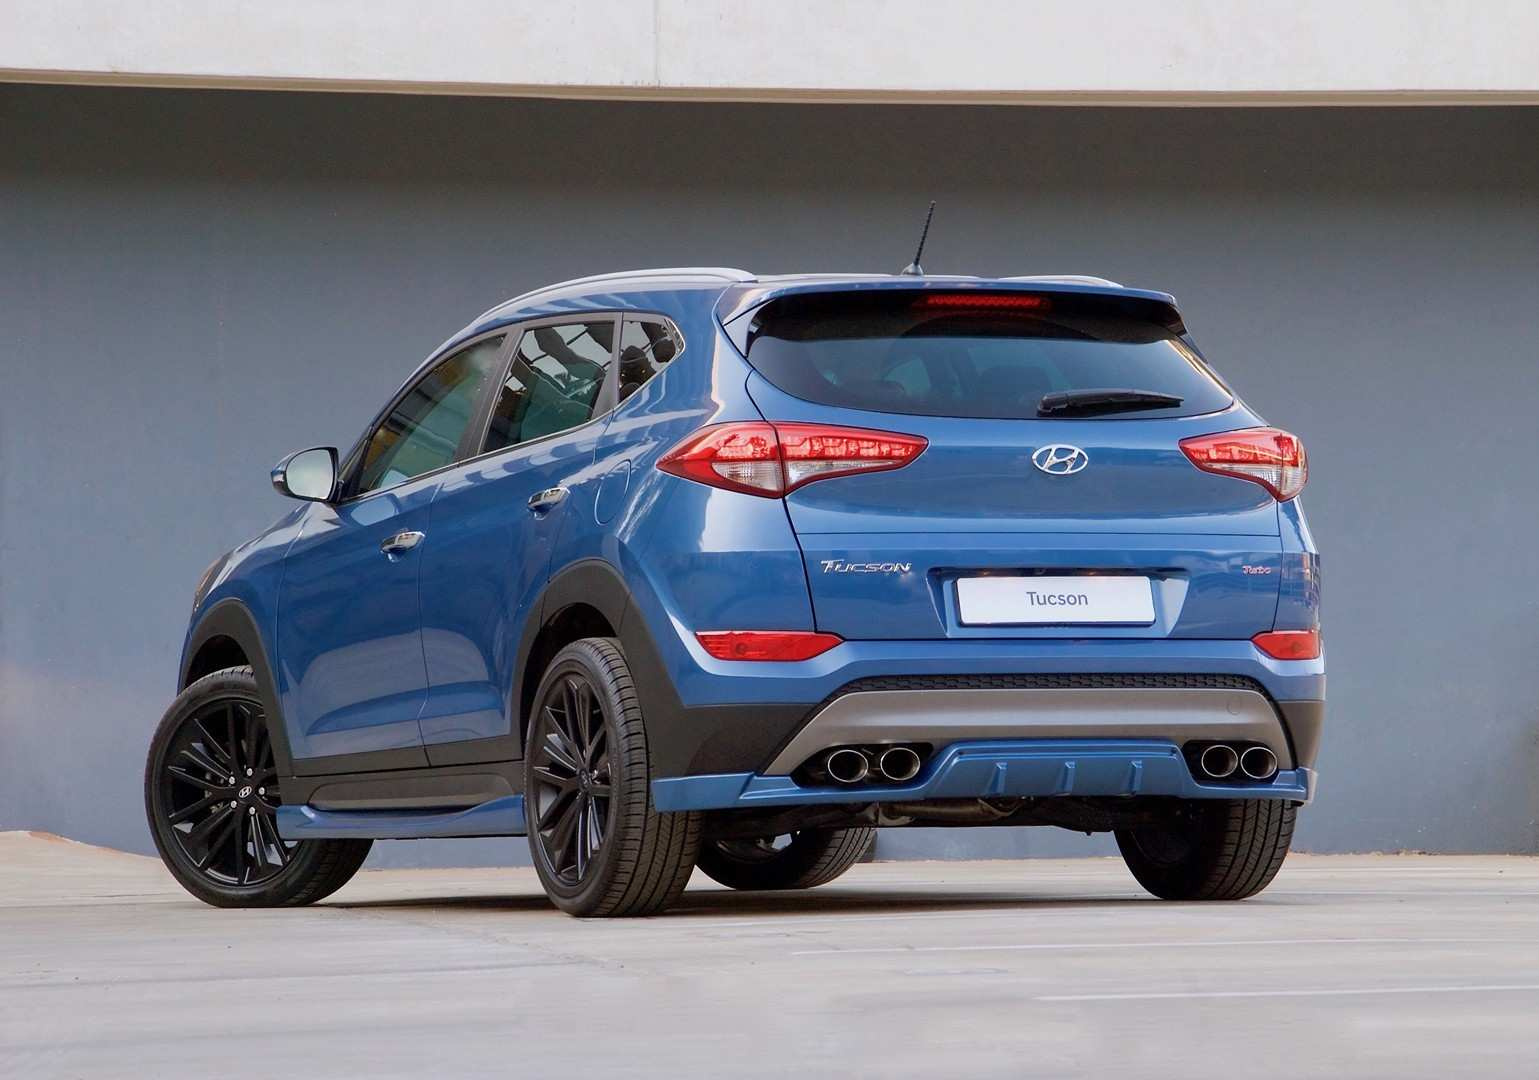 30 Gallery of When Does The 2020 Hyundai Tucson Come Out Spy Shoot by When Does The 2020 Hyundai Tucson Come Out